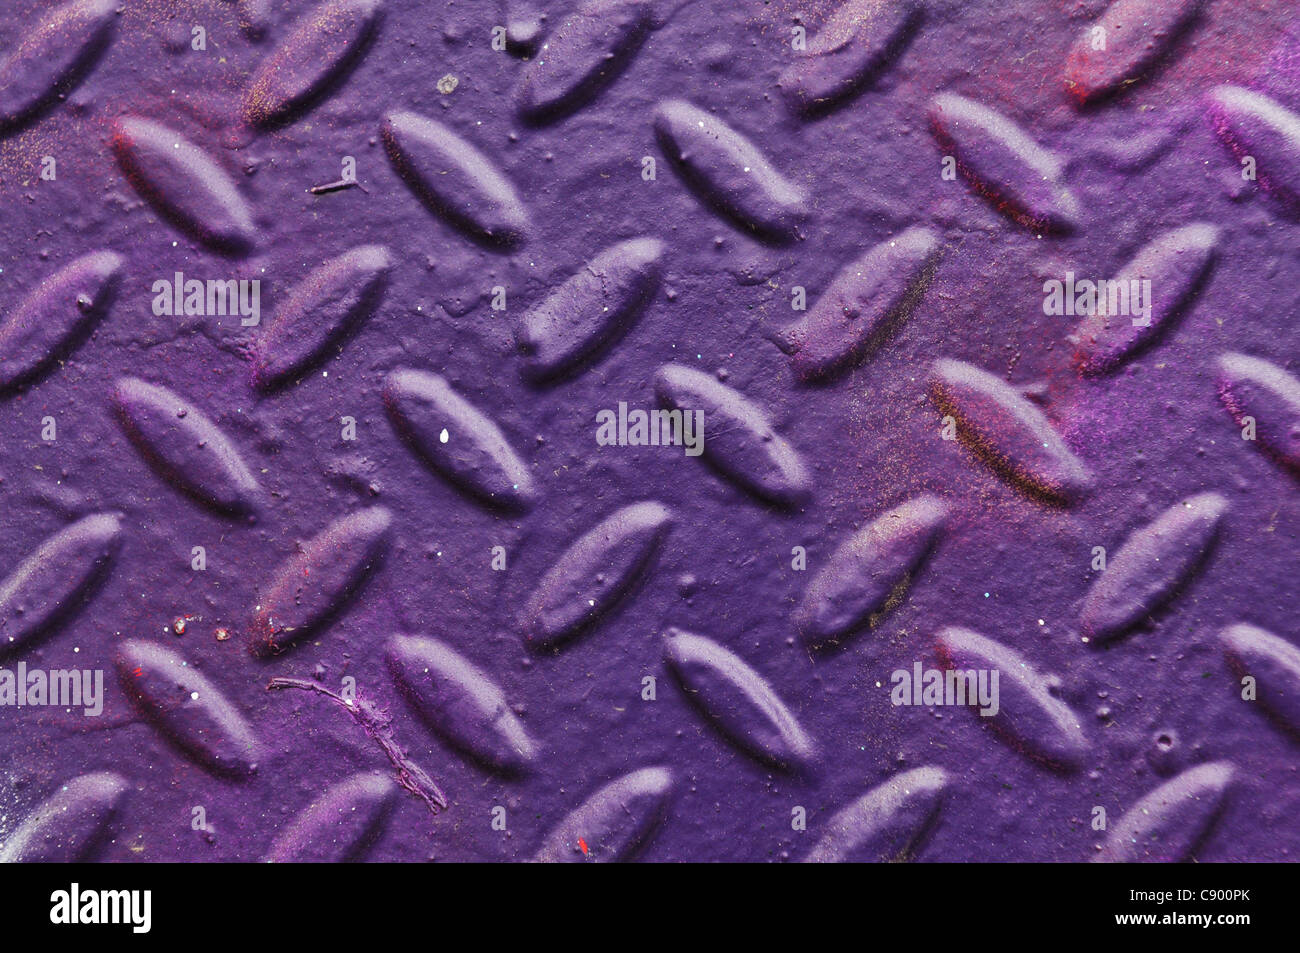 Textured metallic background - Stock Image